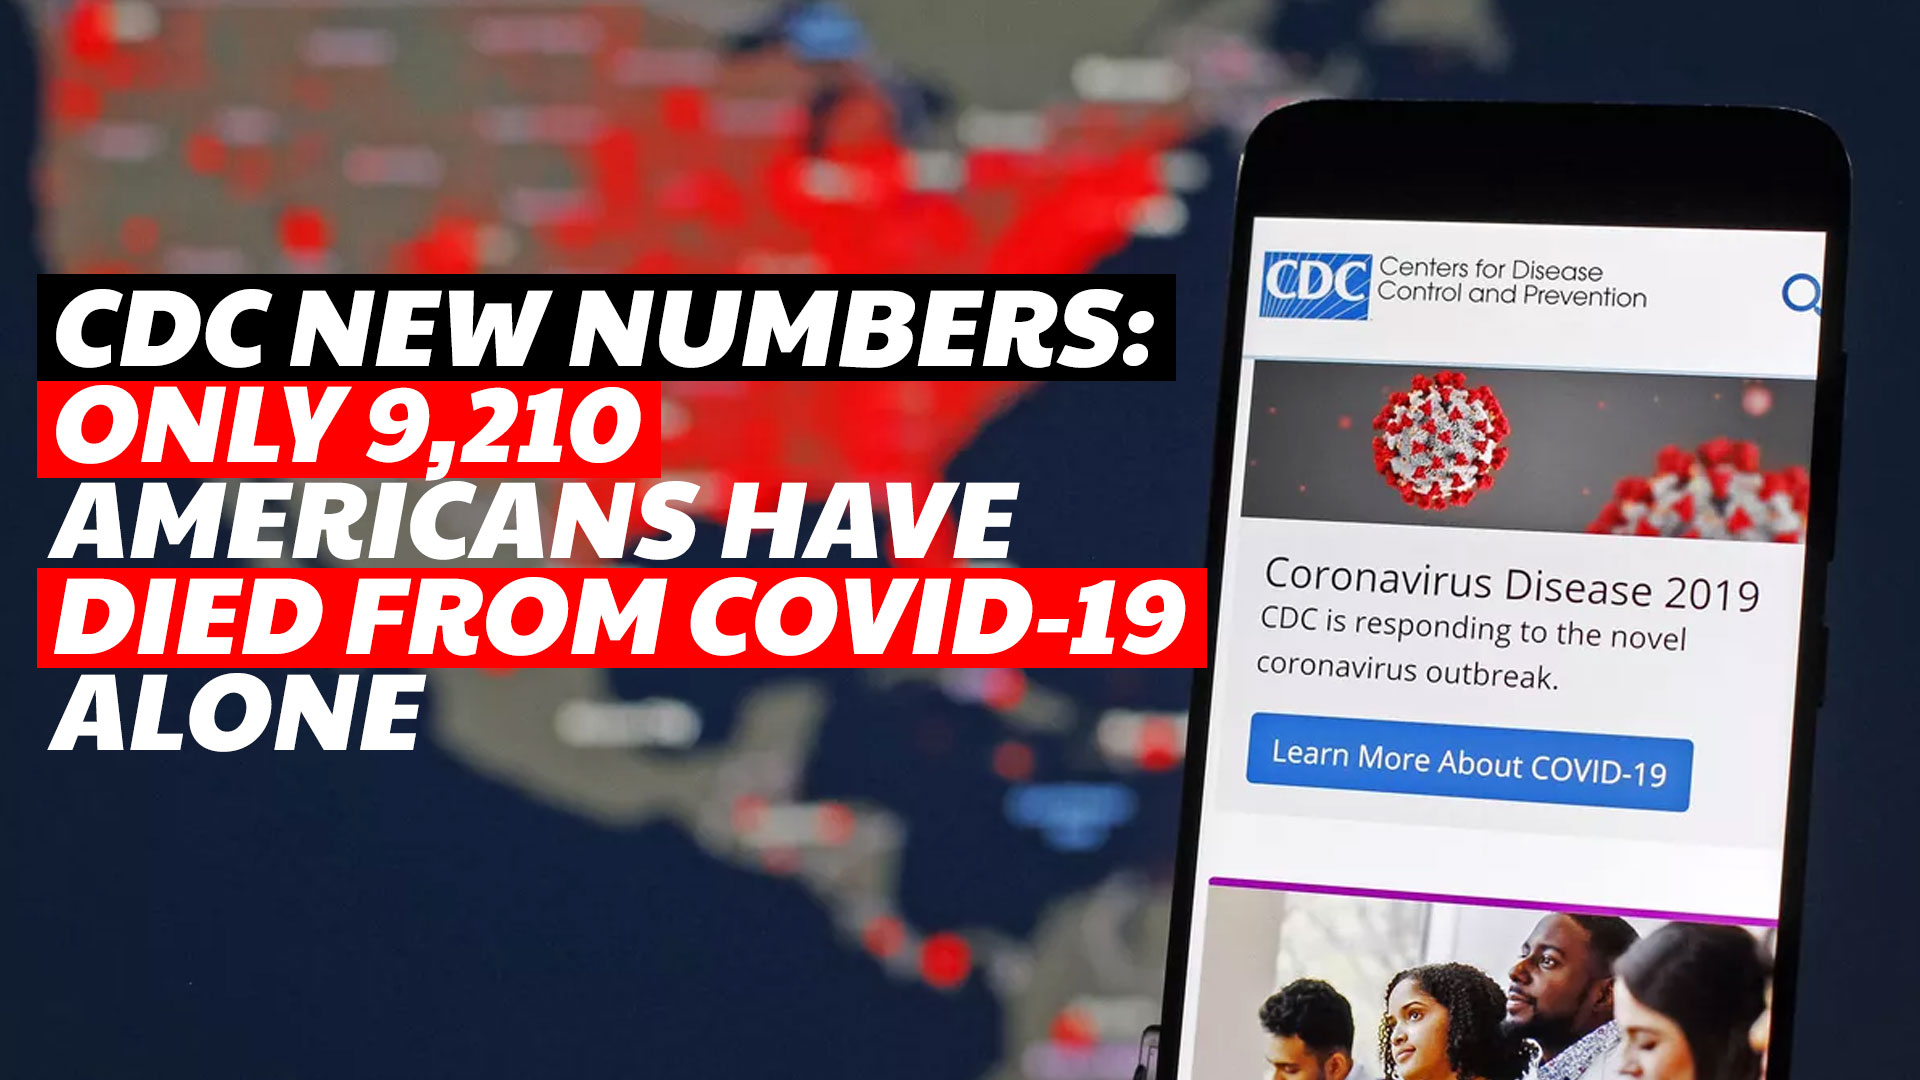 CDC Bails on Coronavirus Rules, Goes All In With Democrats (wattsupwiththat.com)